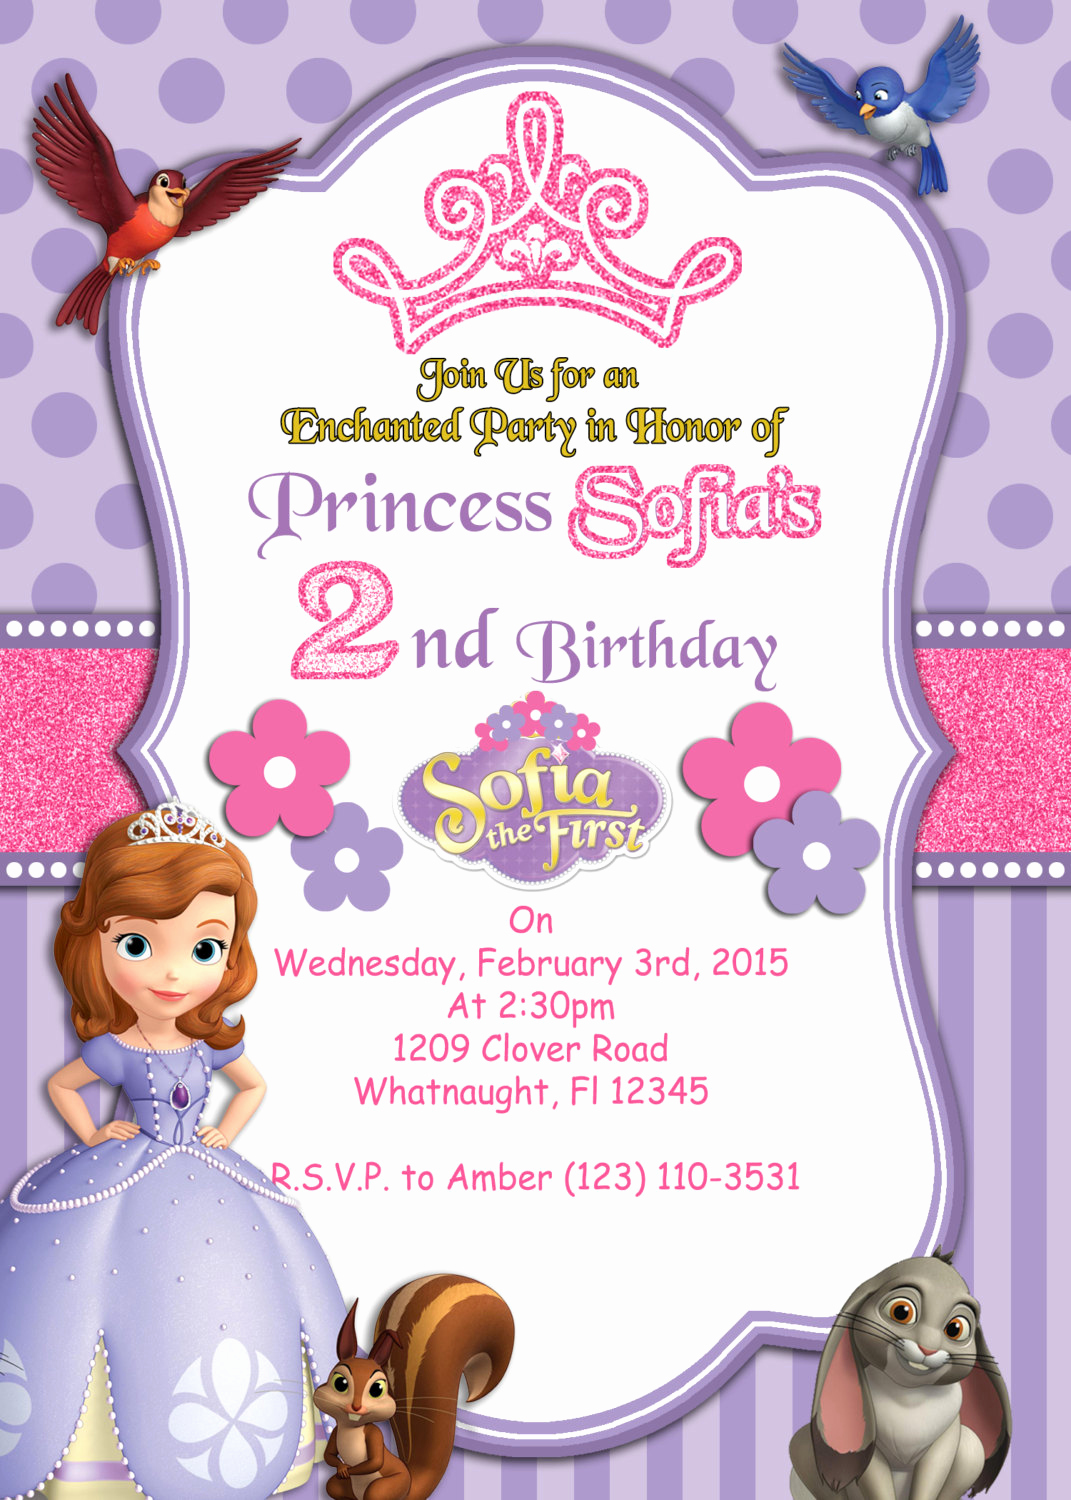 Sofia the First Invitation Awesome Print Your Own sofia the First Invitation by atom Design